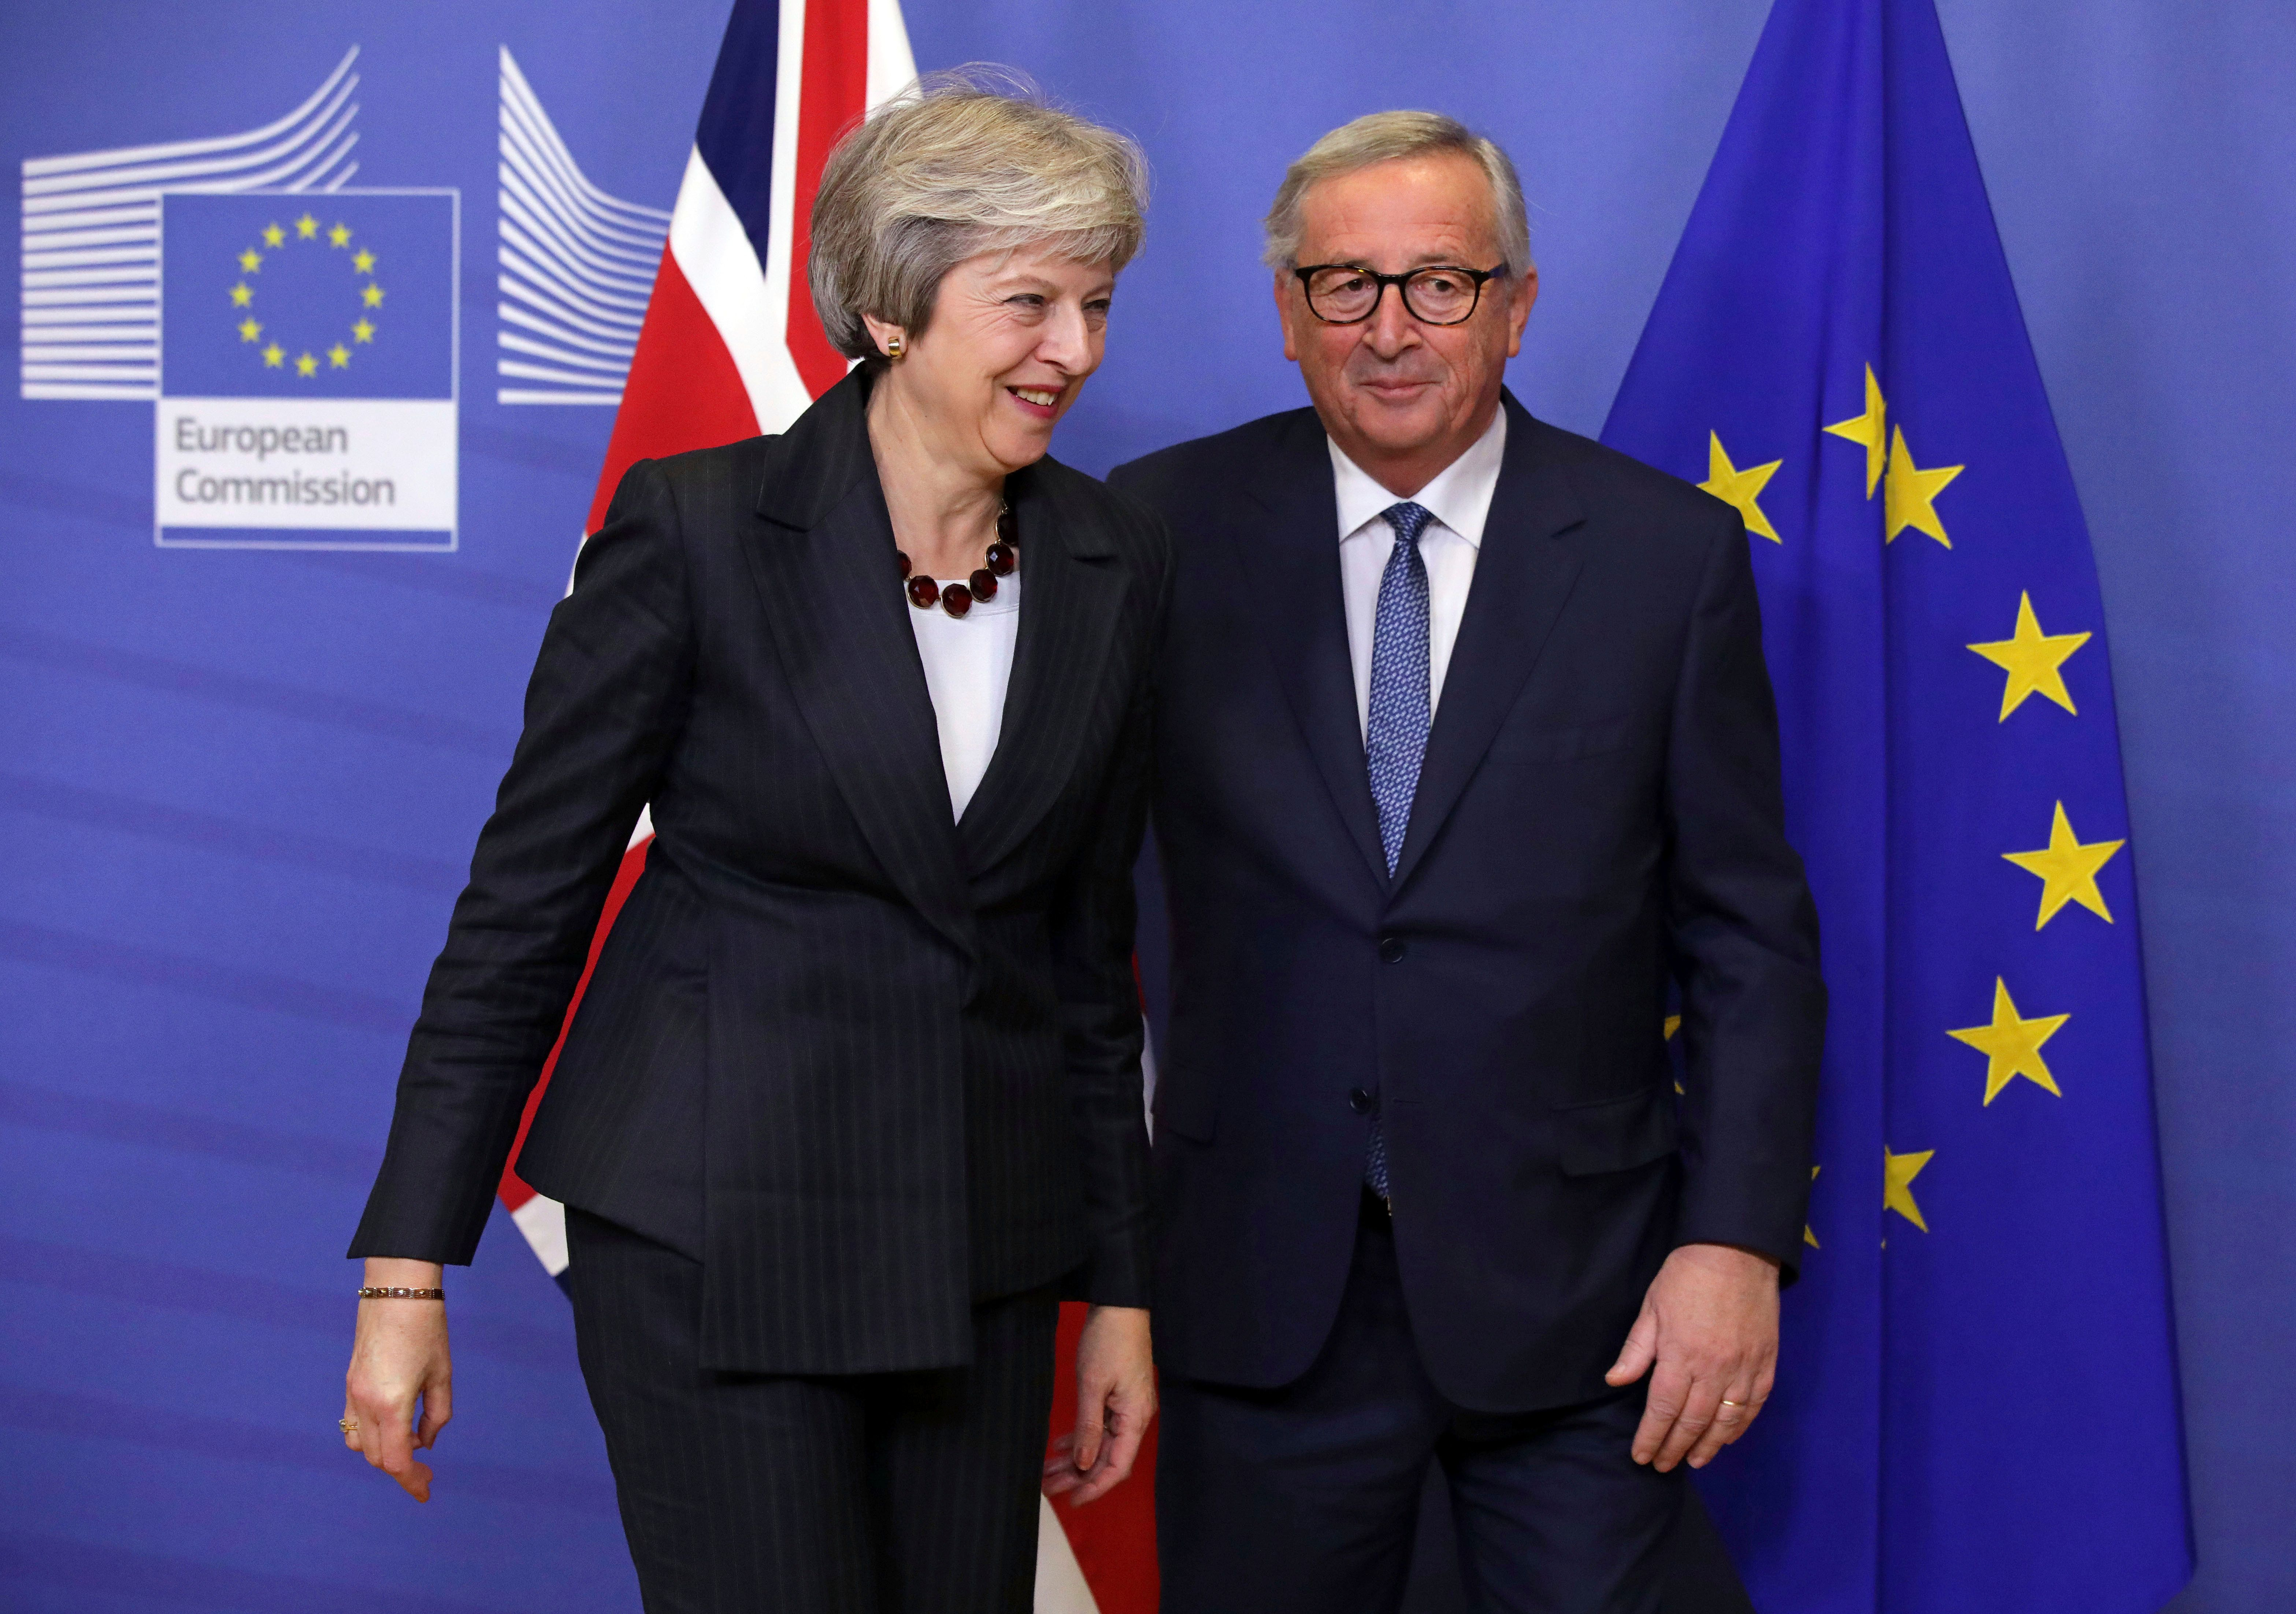 EU And UK Reach Agreement On Draft Future Relationship Ahead Of Crunch